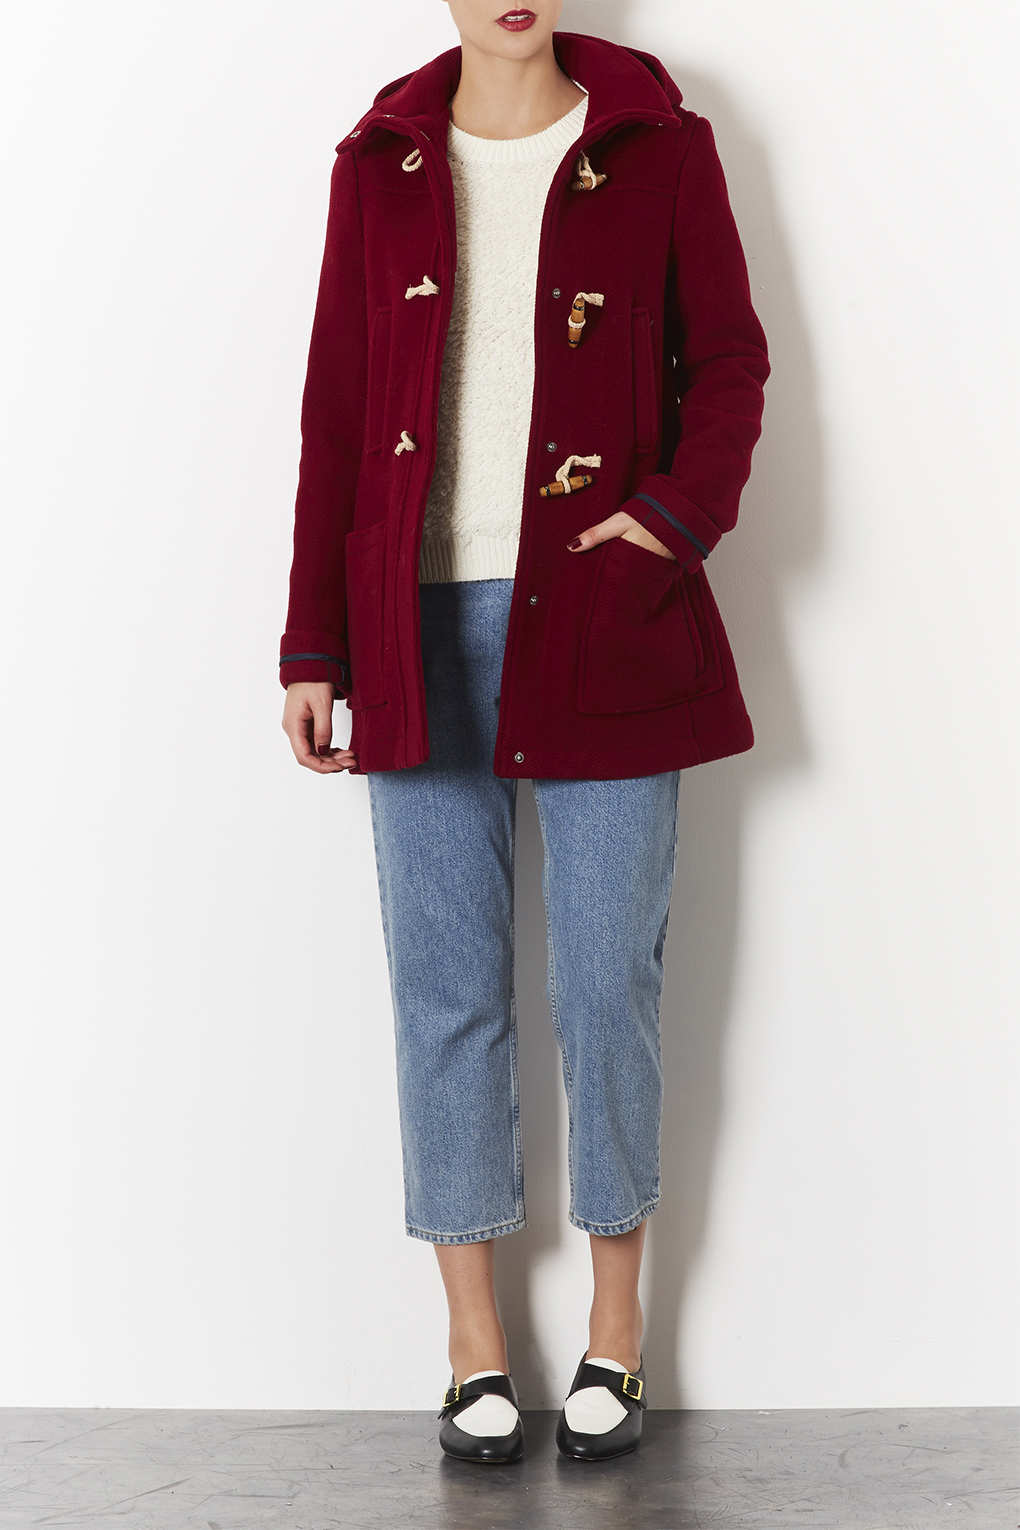 Topshop Bound Seam Duffle Coat in Red | Lyst